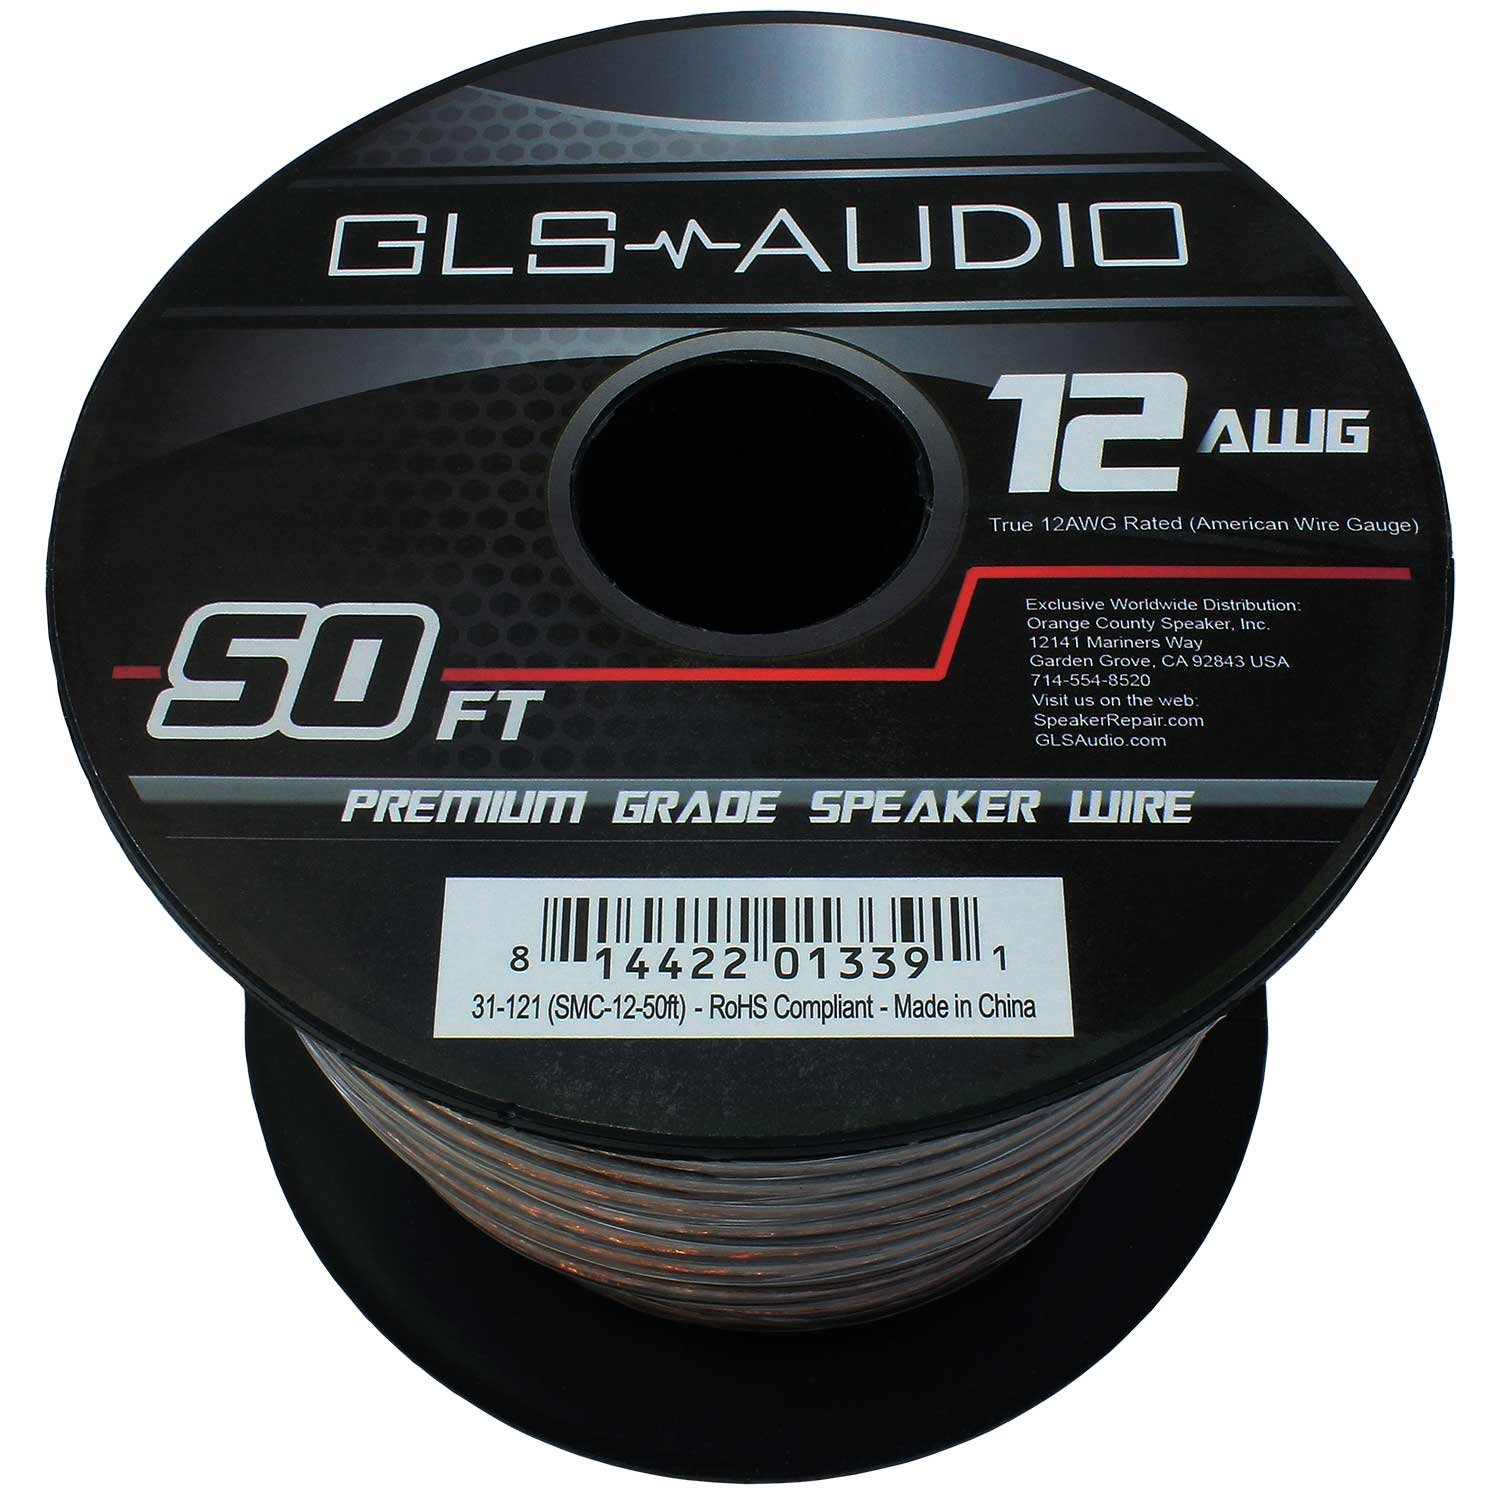 Gls Audio Premium 12 Gauge 50 Feet Speaker Wire True Subwoofer Wiring On Bi Amplifier And Home Cinema 12awg Cable 50ft Clear Jacket High Quality Spool Roll 12g 2 Bulk